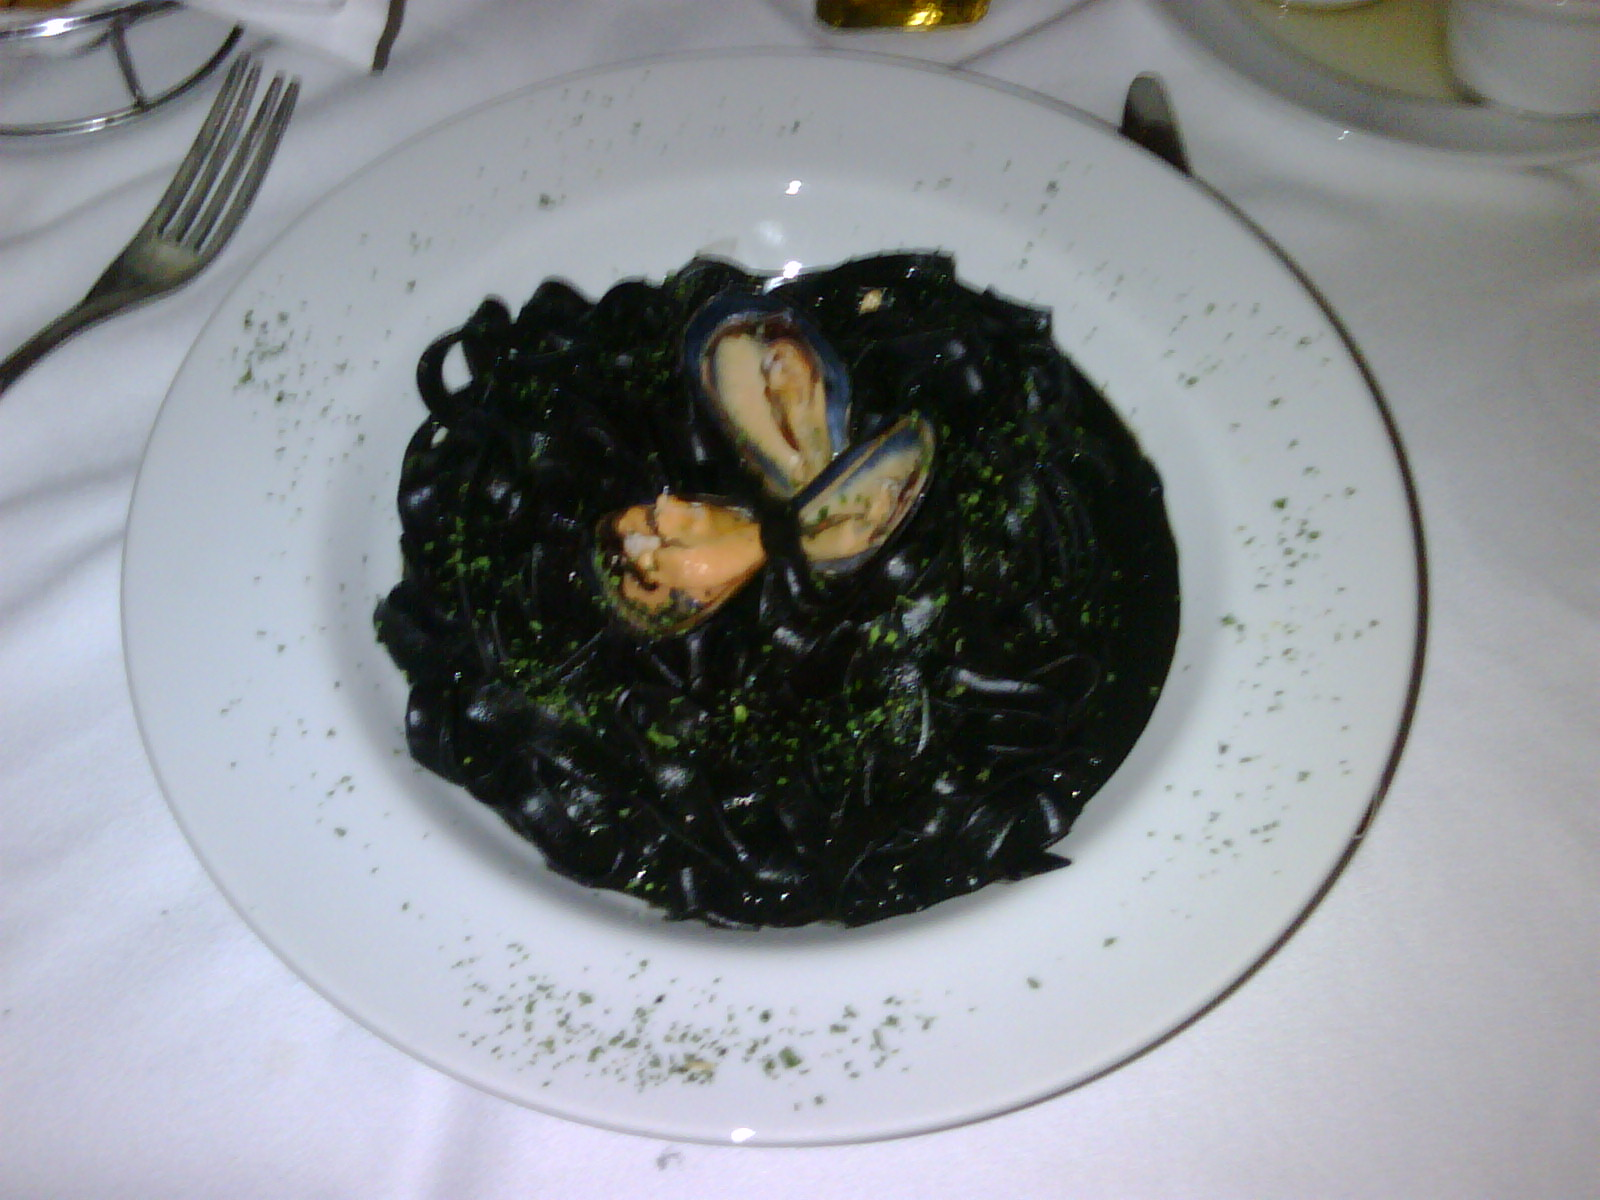 i realized just how rusty my spanish was when i ordered squid ink fettucini accidentally. this was easily the lamest thing i have ever ordered.